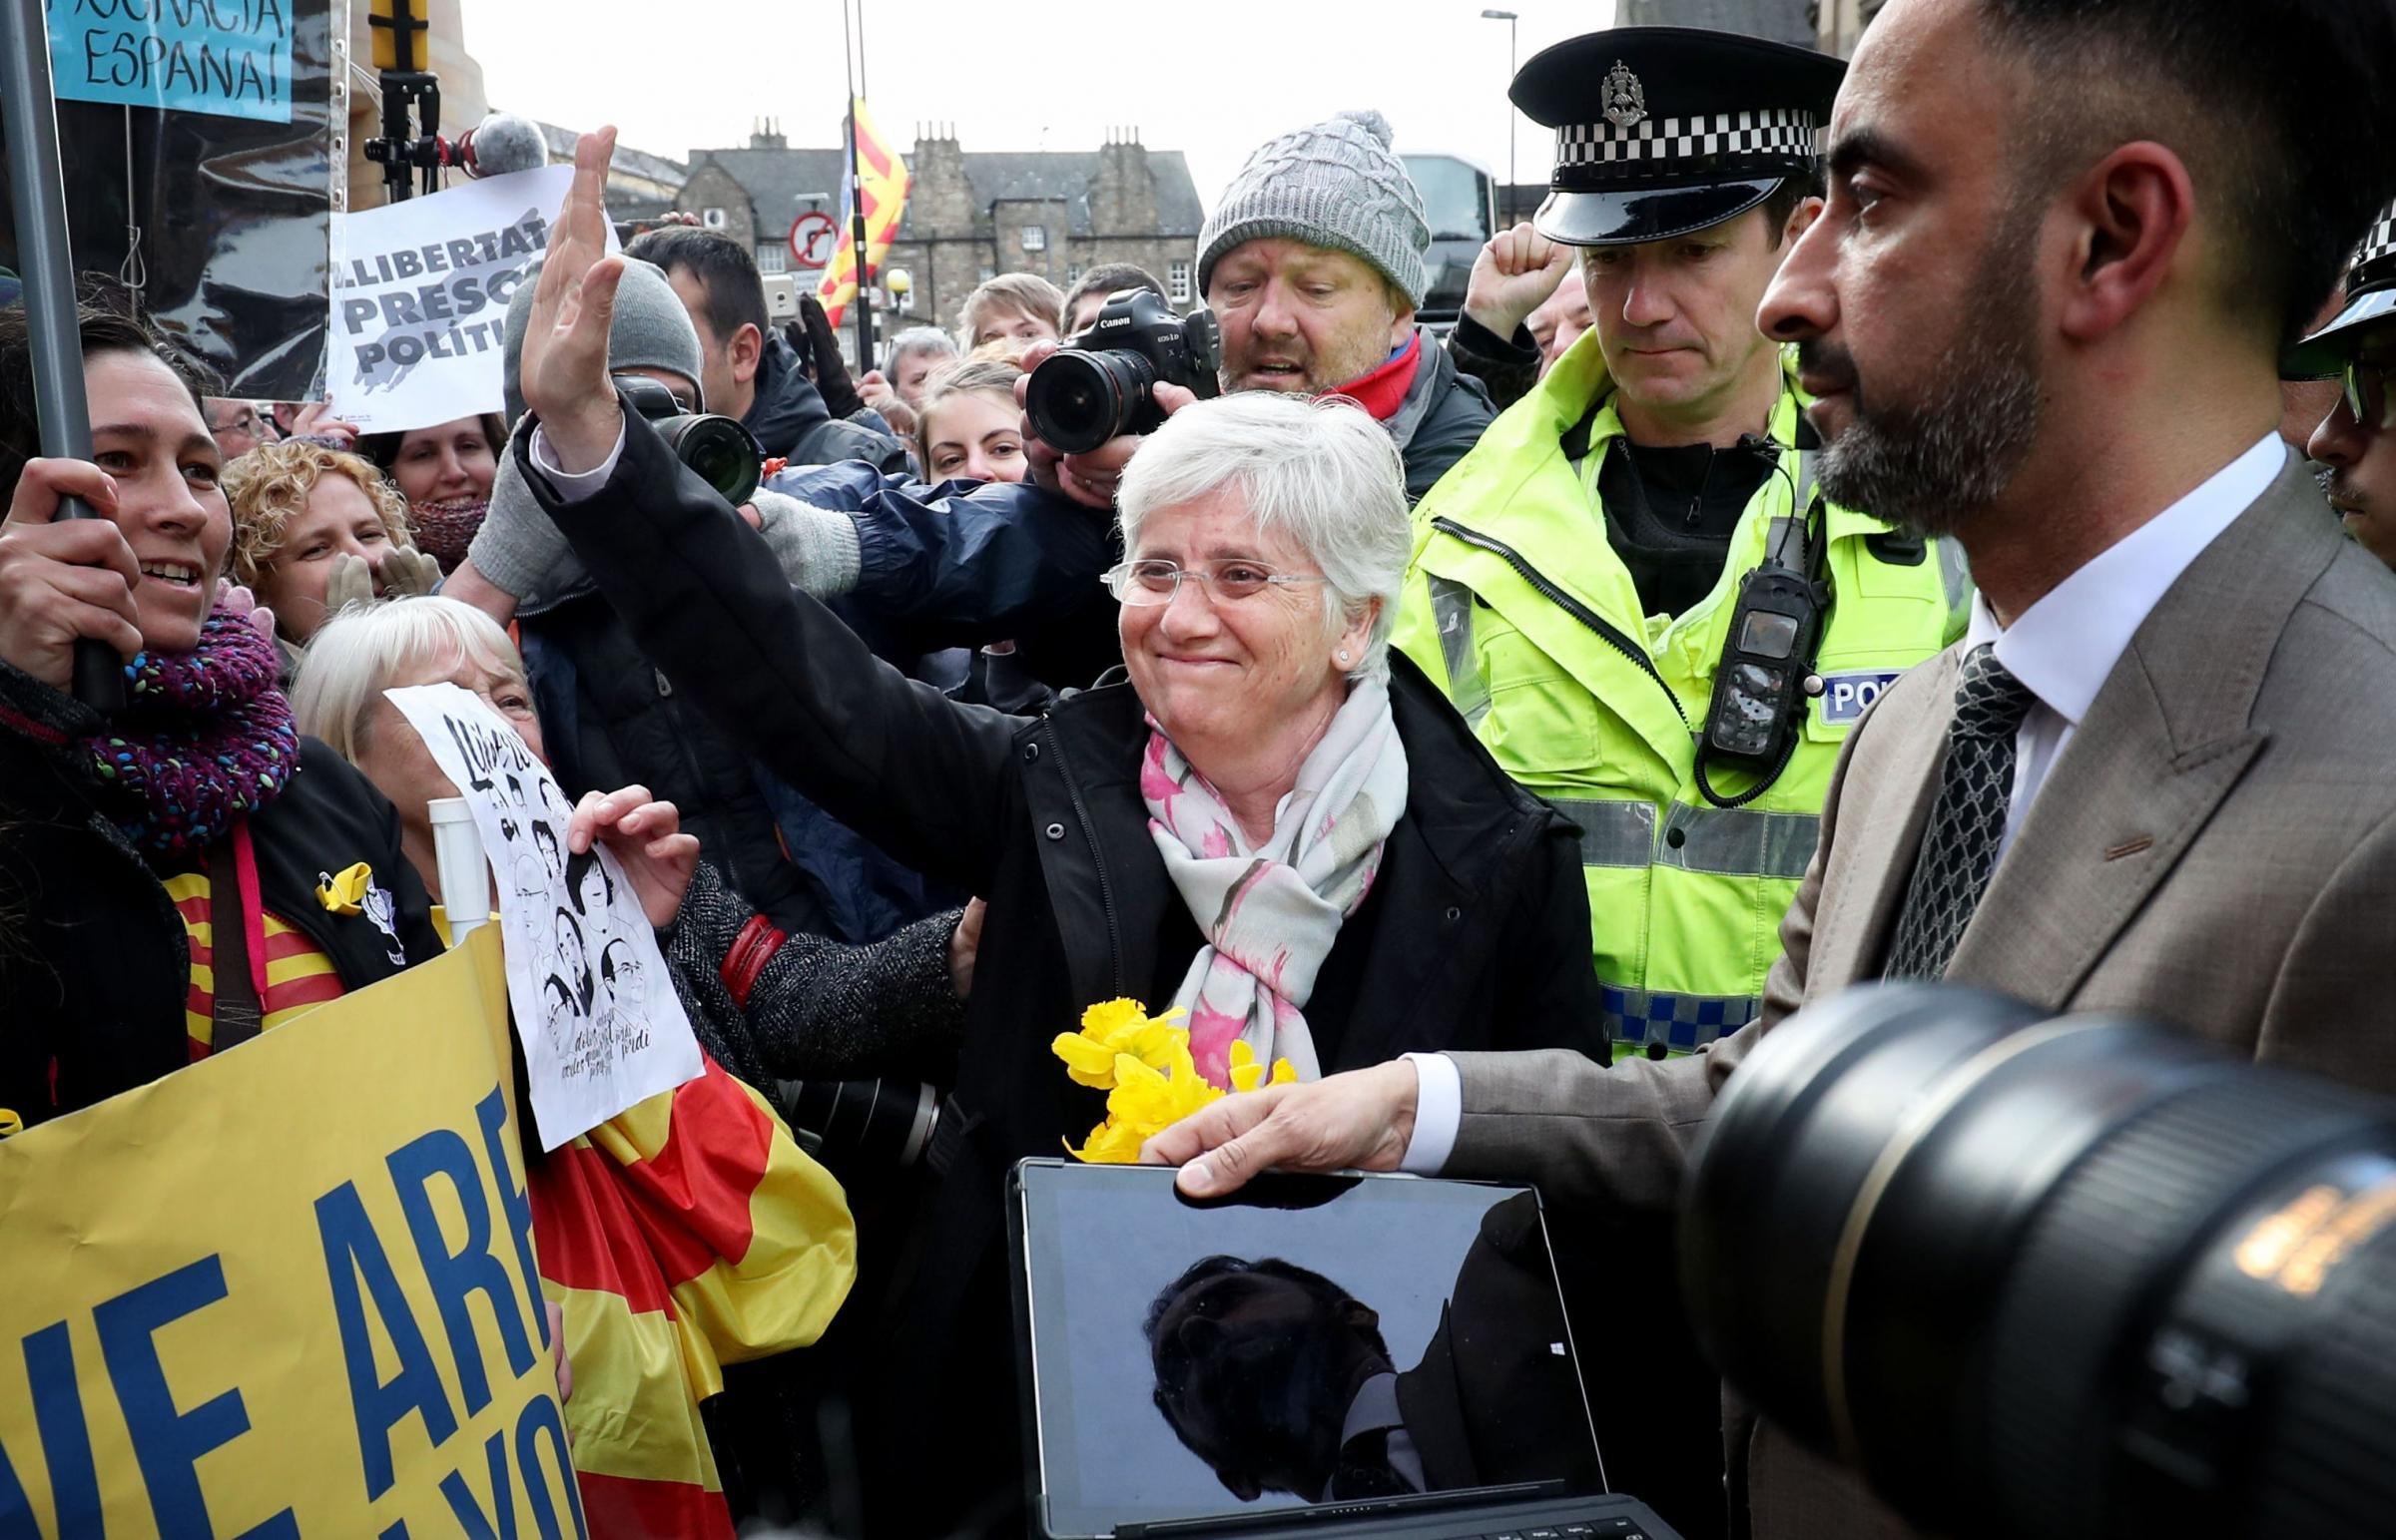 Former Catalan education minister Clara Ponsati (centre), who is facing extradition to Spain, greets supporters alongside her lawyer Aamer Anwar outside Edinburgh Sheriff Court after she was released on bail in March